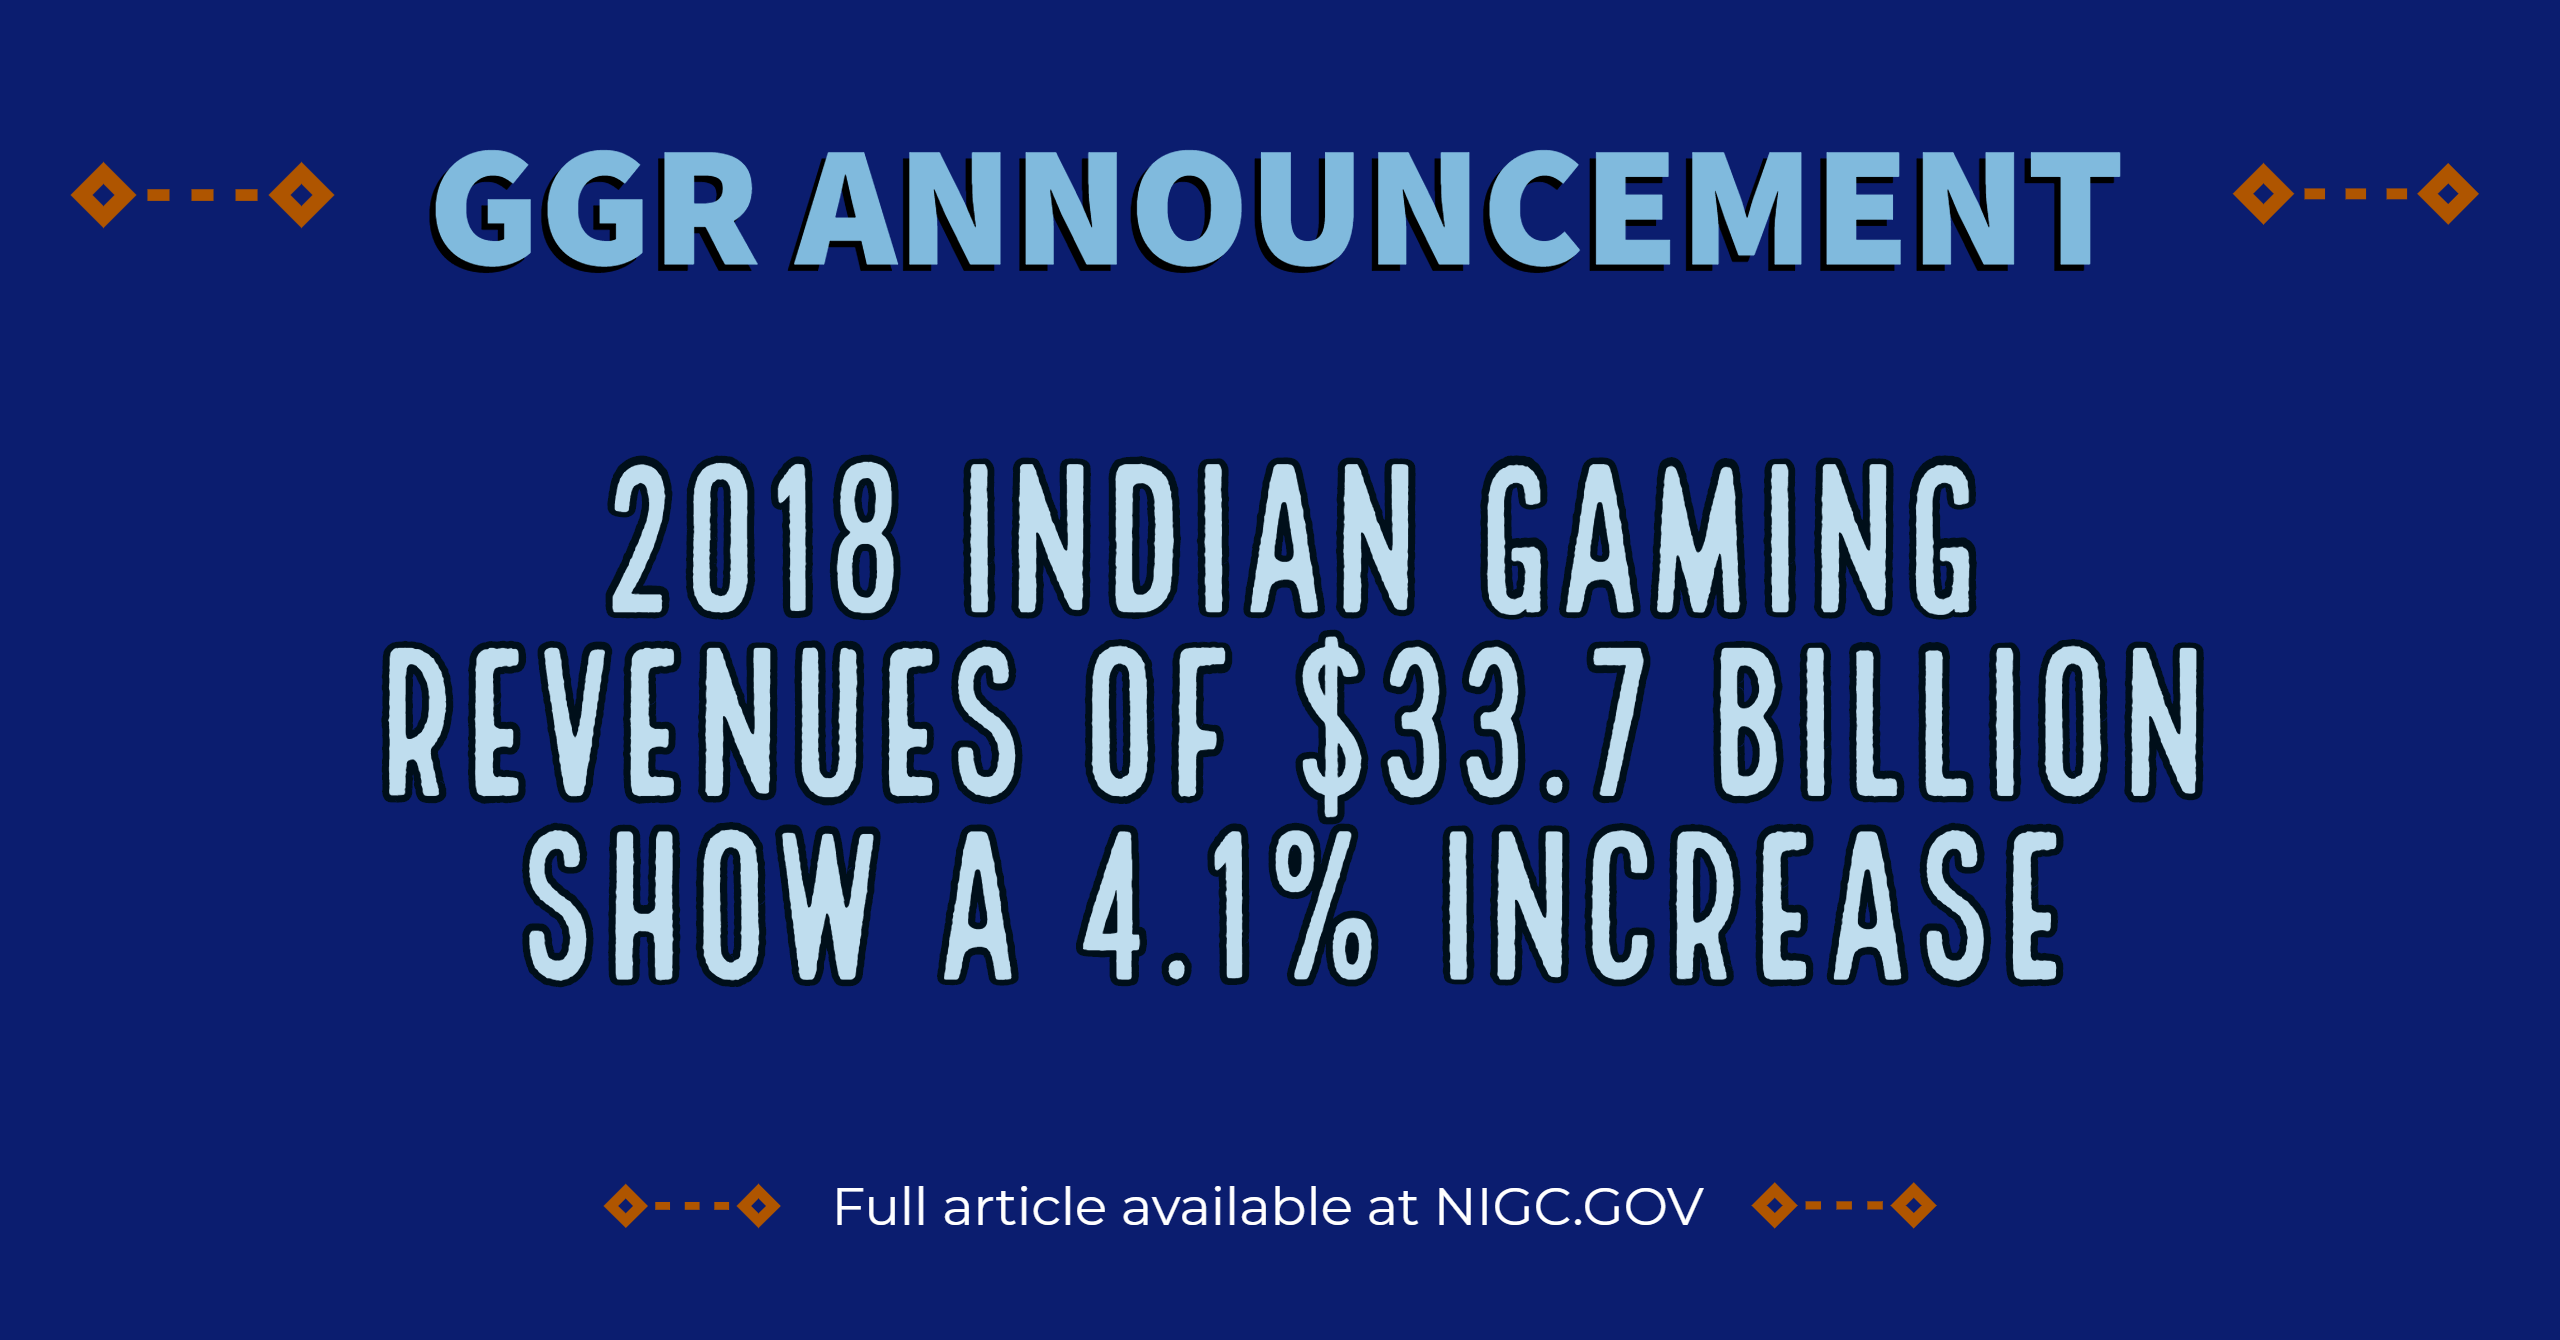 2018 Indian Gaming Revenues of $33.7 Billion Show a 4.1% Increase